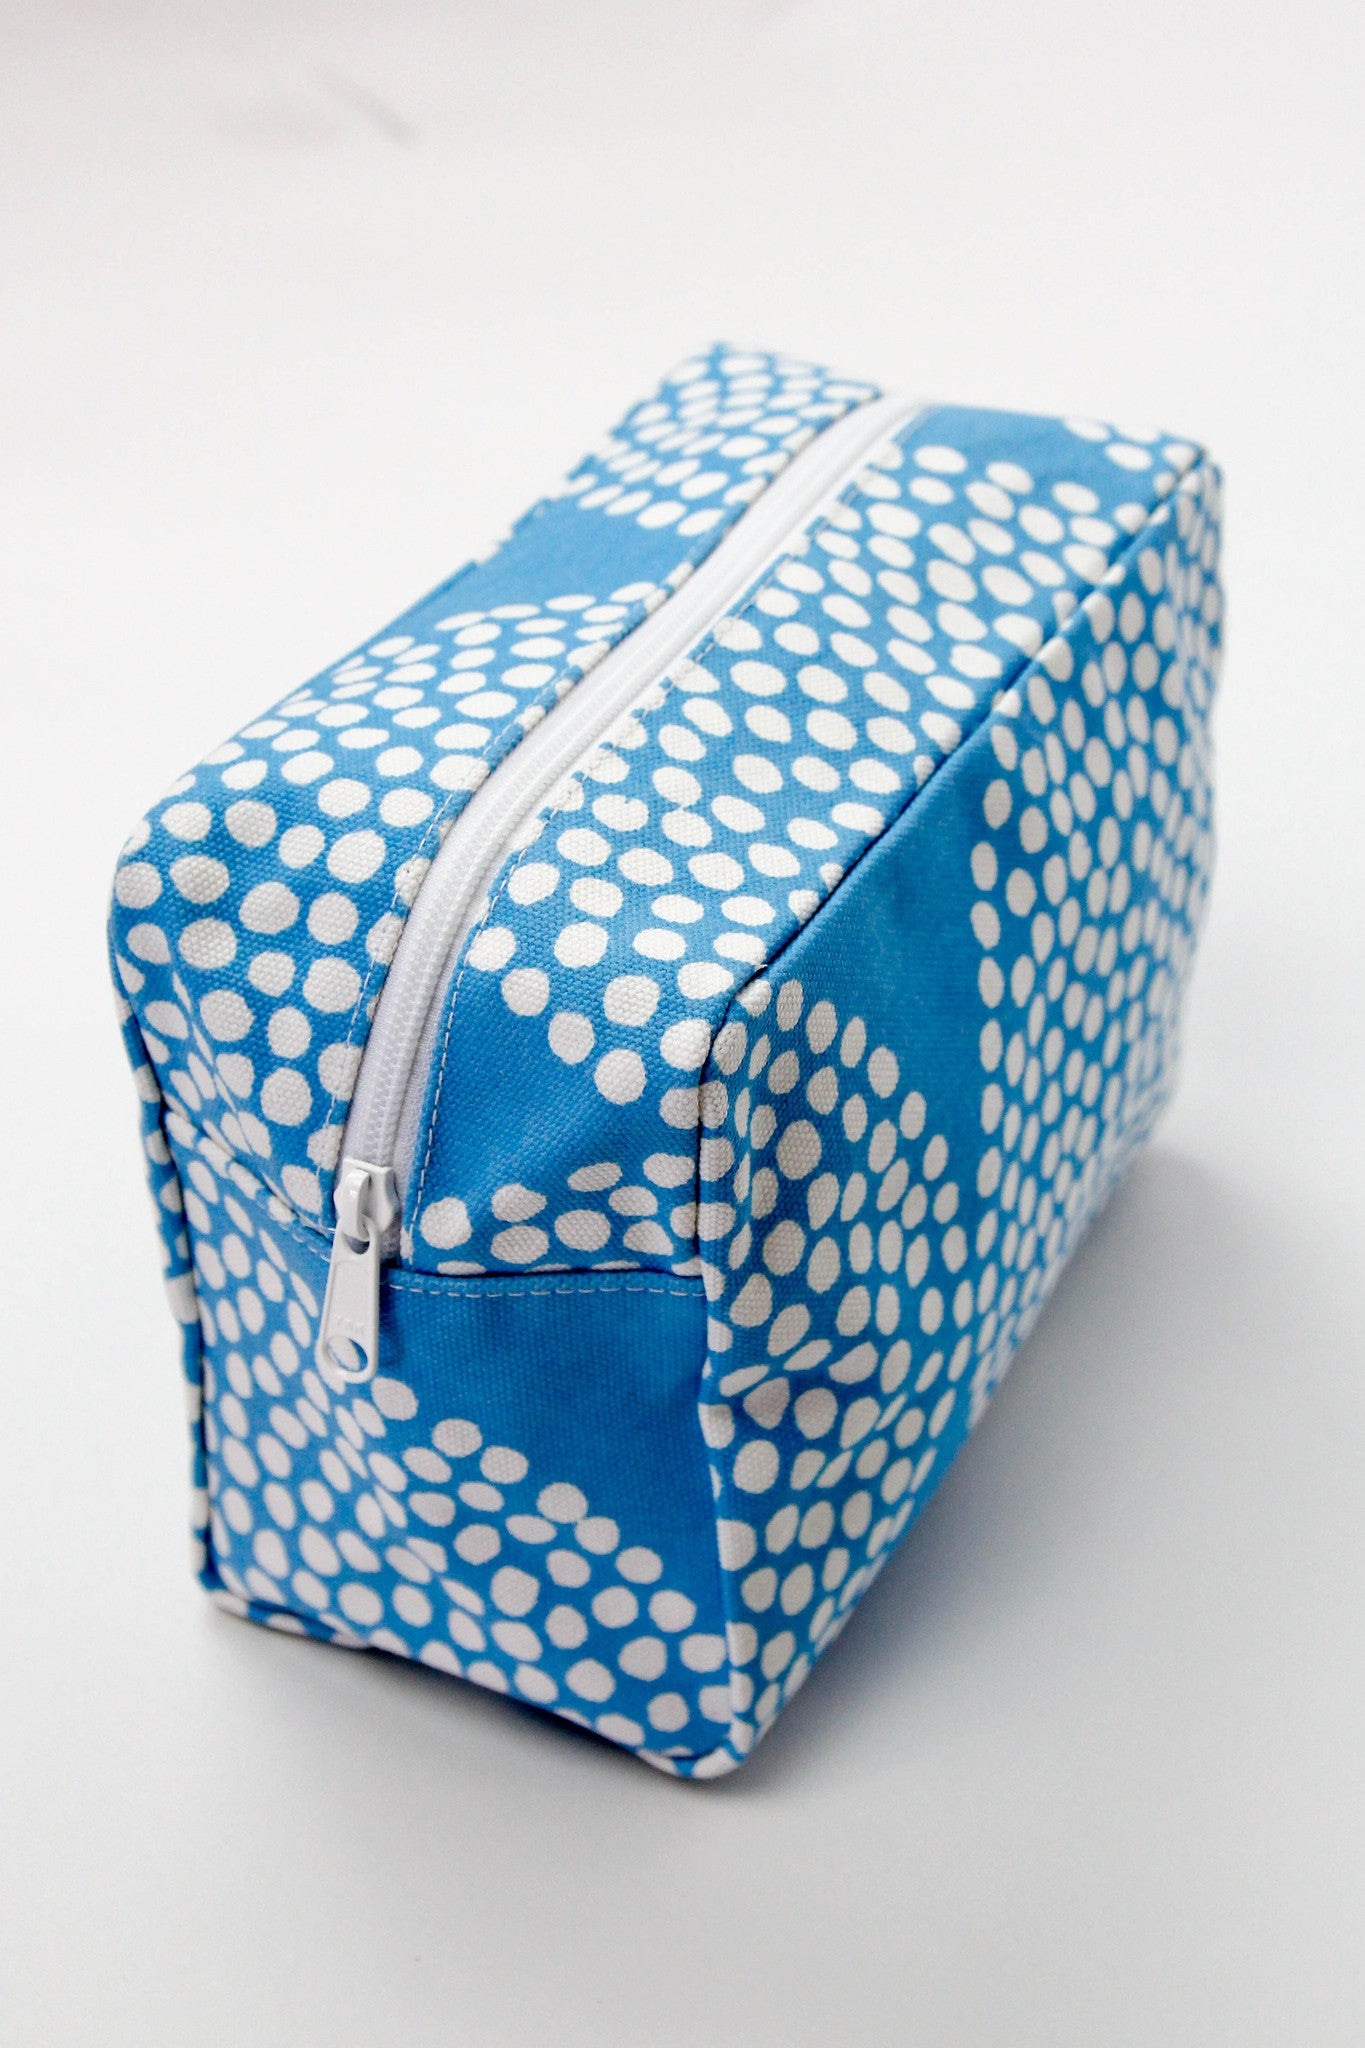 Large Cosmetic Bag - Big Wheels Powder